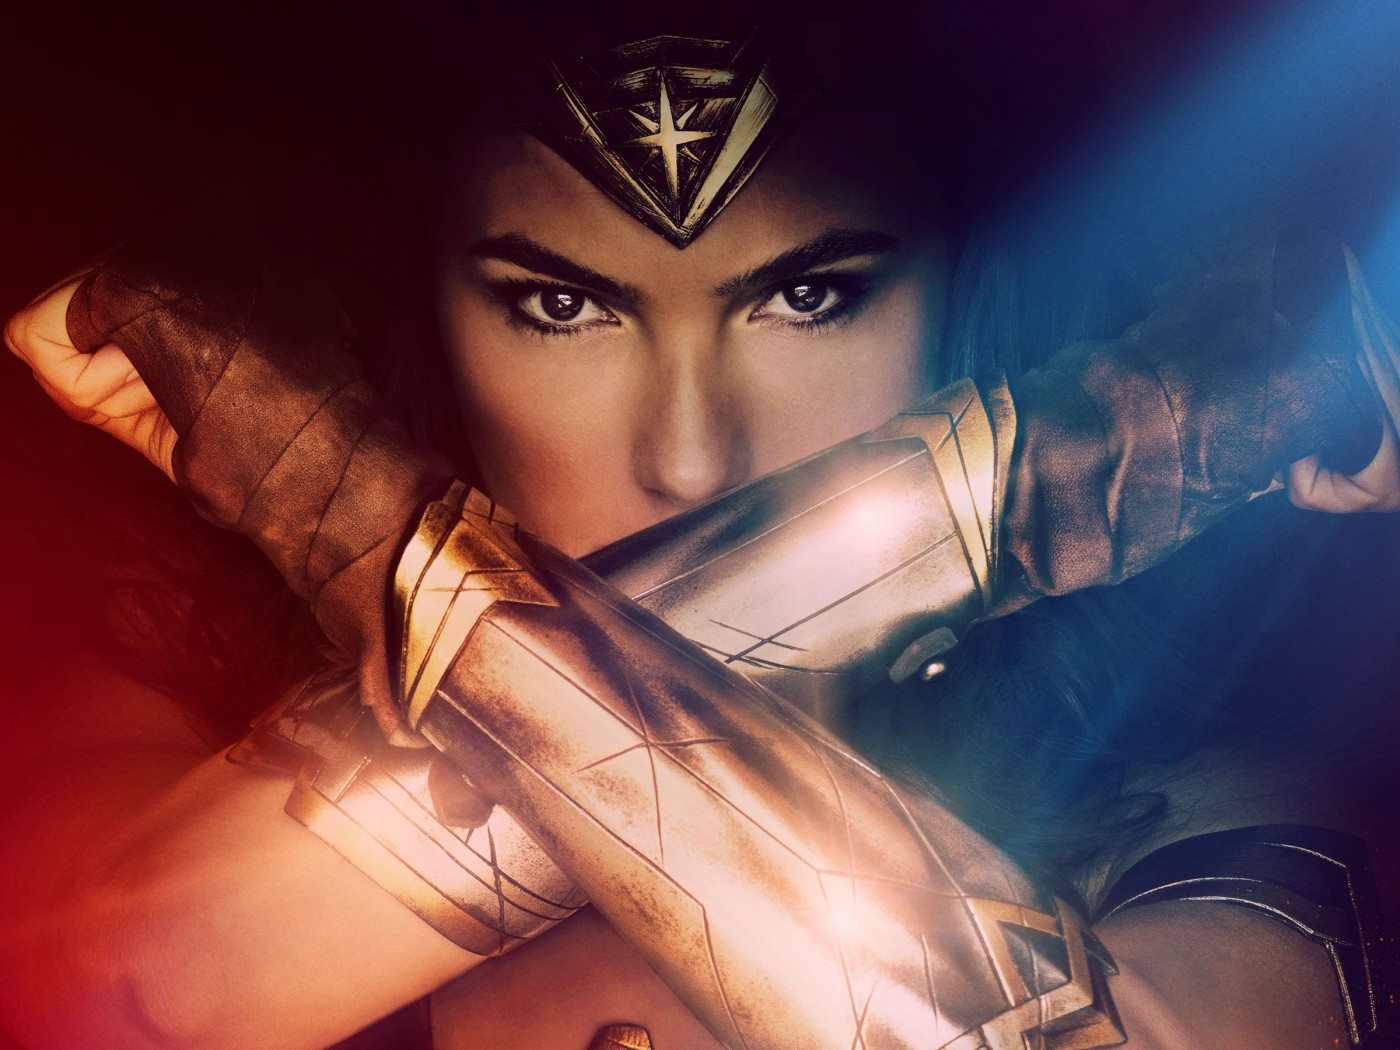 Wonder Woman Movie Background Hd Wallpaper for Desktop and Mobiles